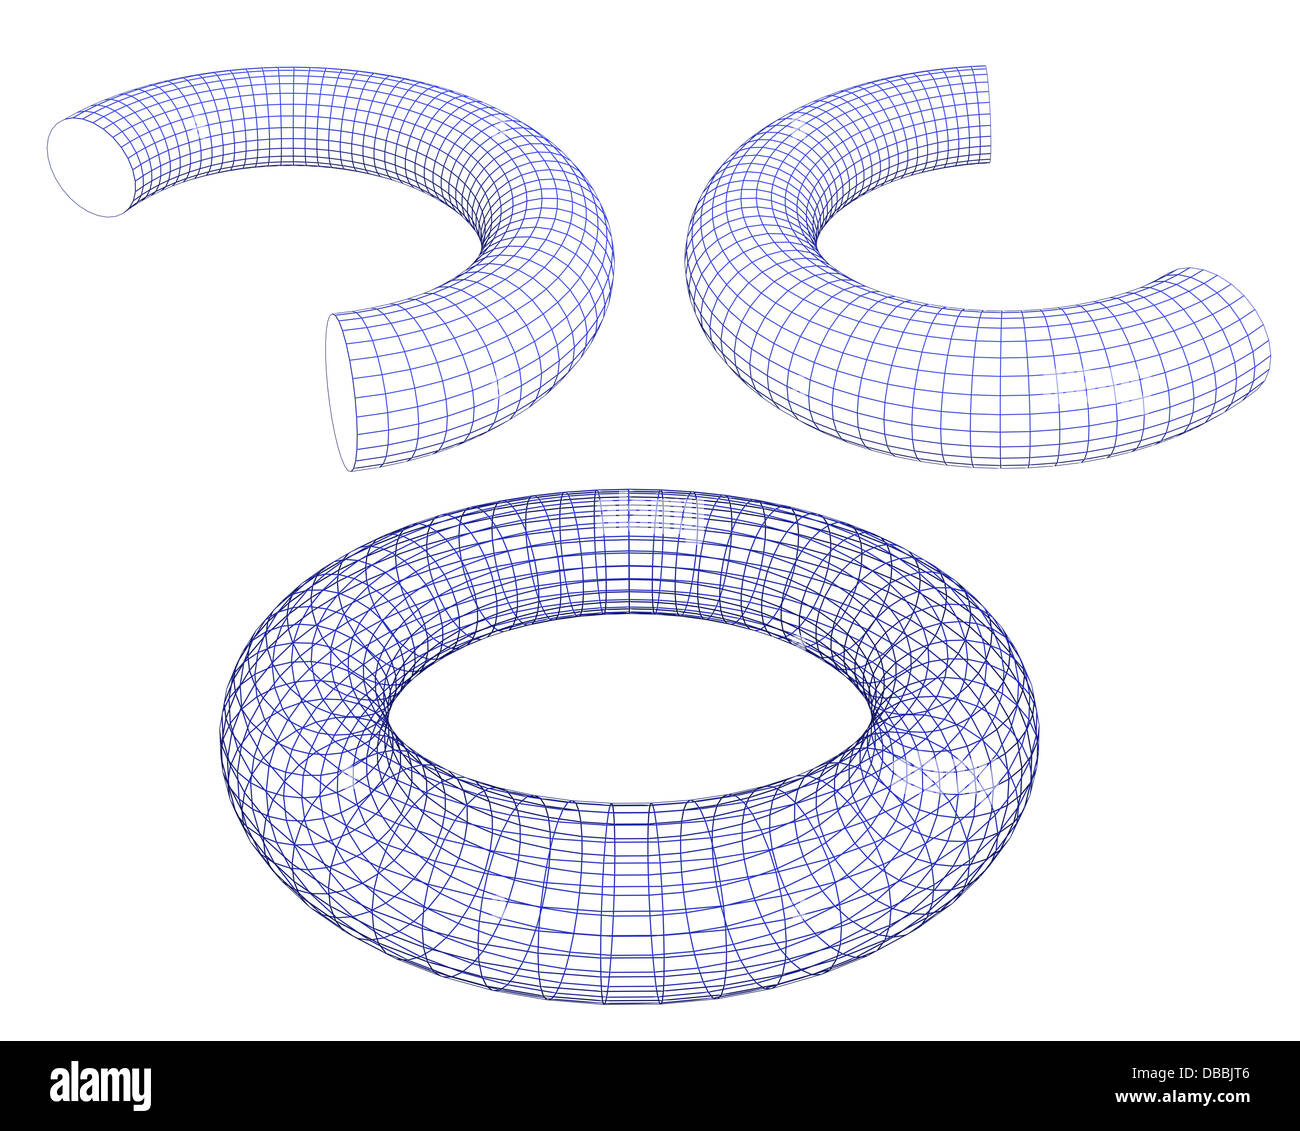 3d torus shapes wire frame ready for editing and simple for every 3d torus shapes wire frame ready for editing and simple for every design isolated on white background biocorpaavc Choice Image